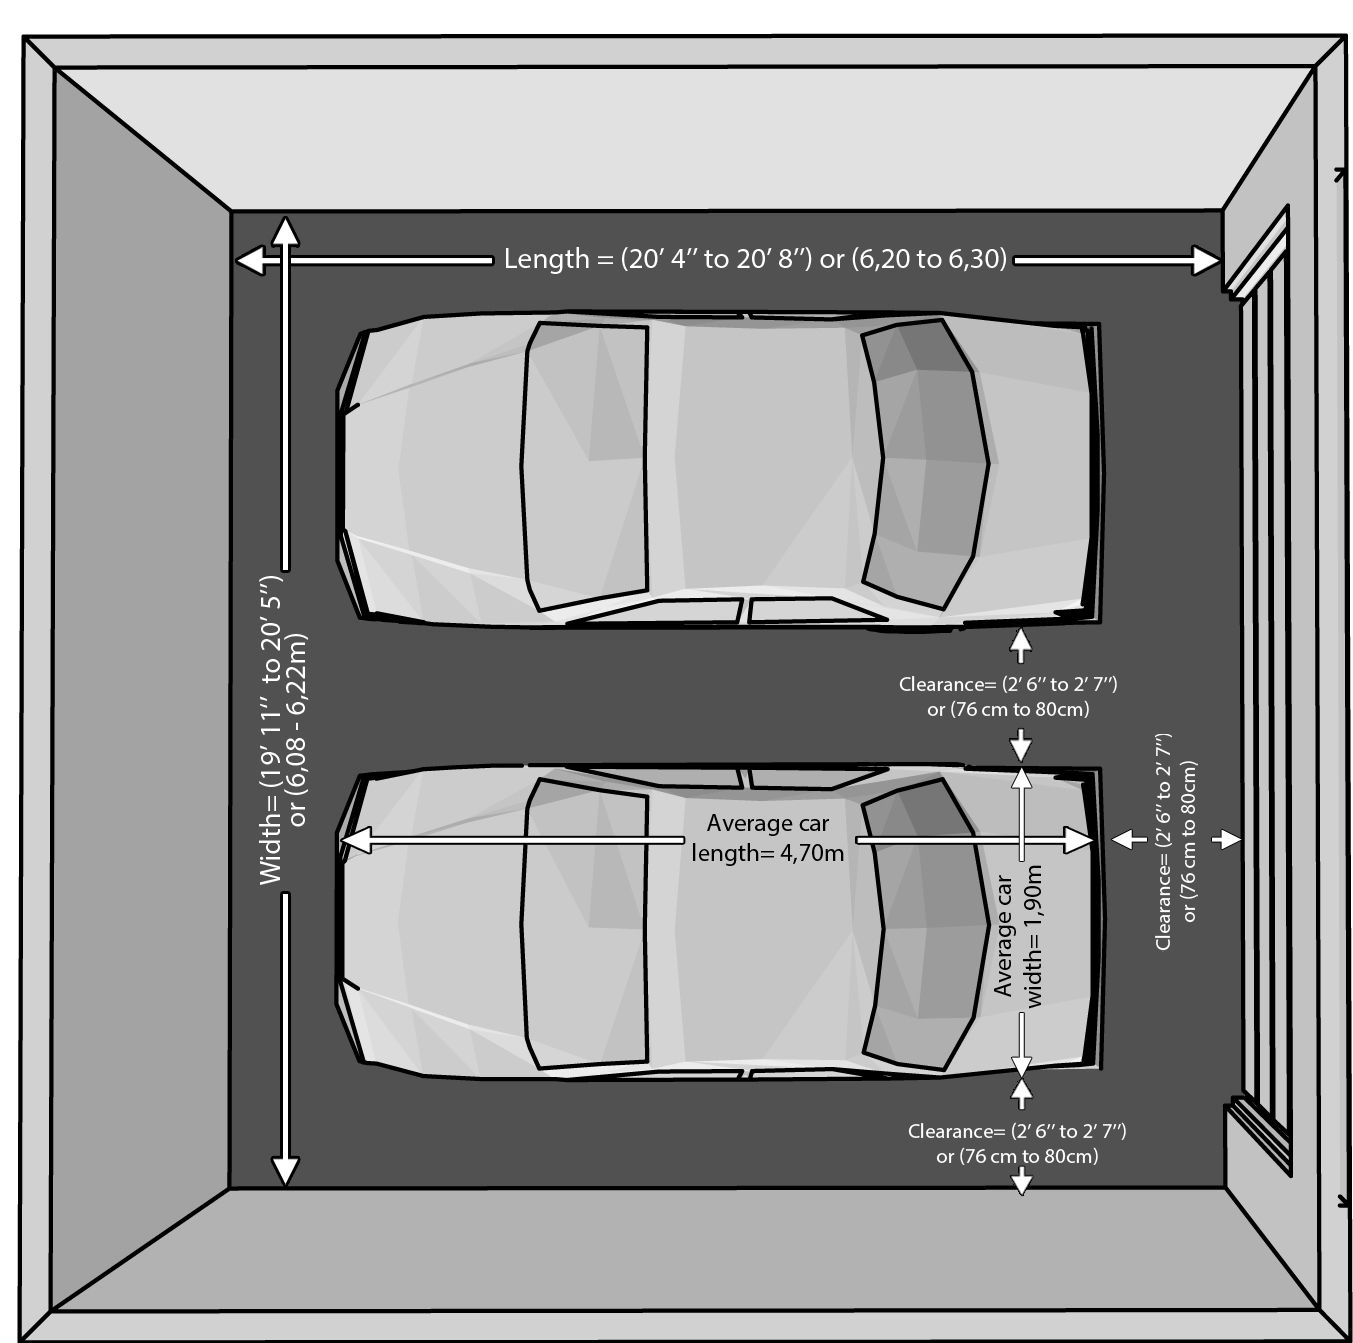 Garage size for two cars garage dimensions for two cars for Medidas de un carro arquitectura